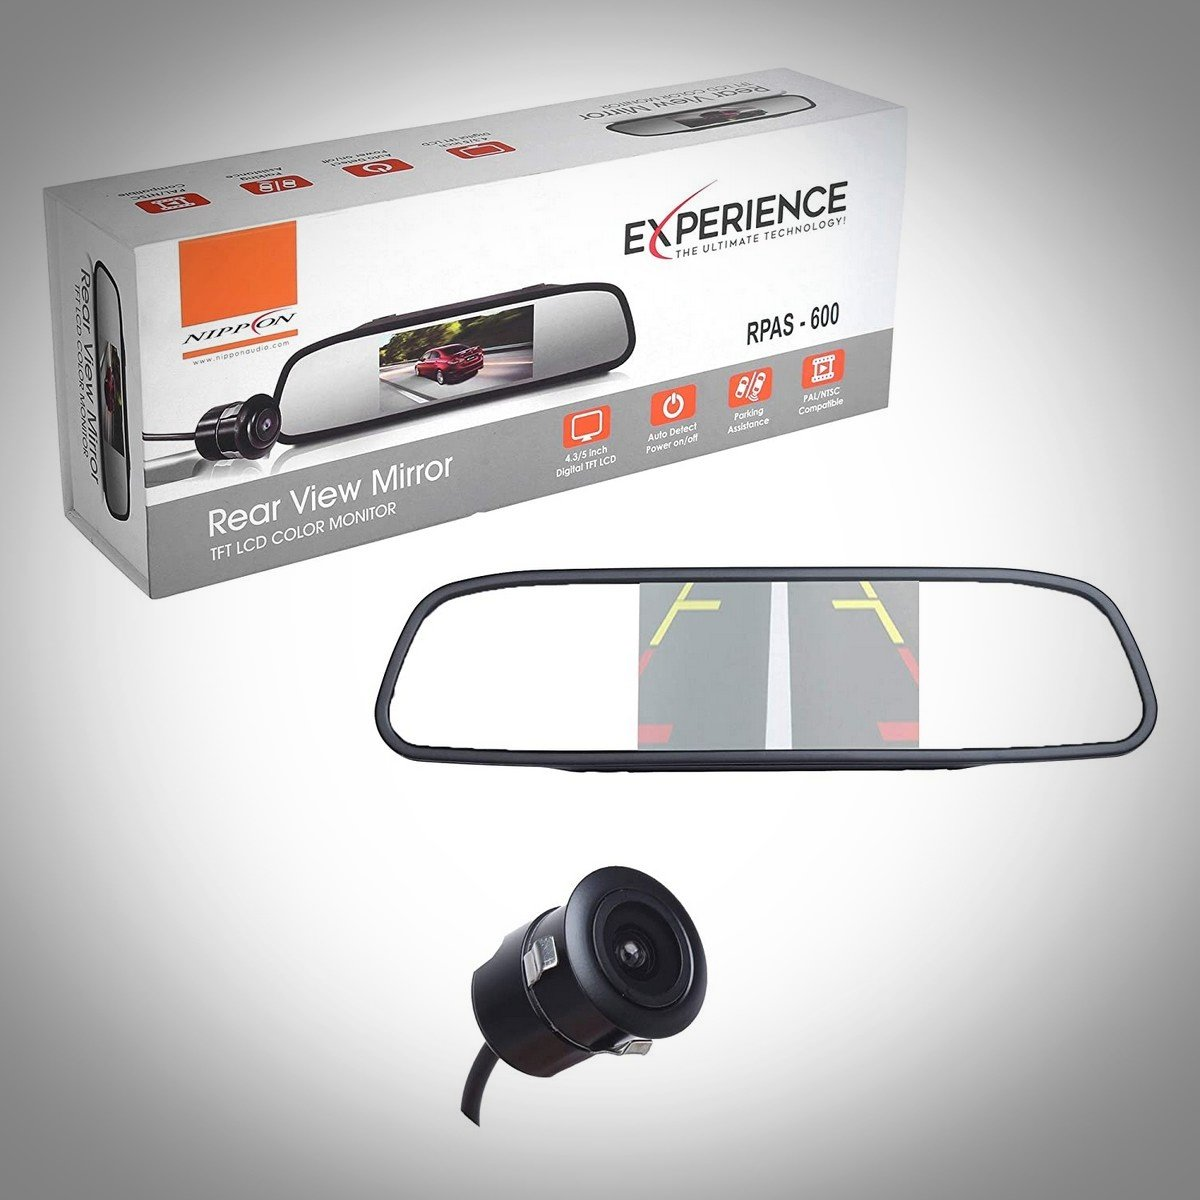 nippon rpas 600 rear view mirror with camera